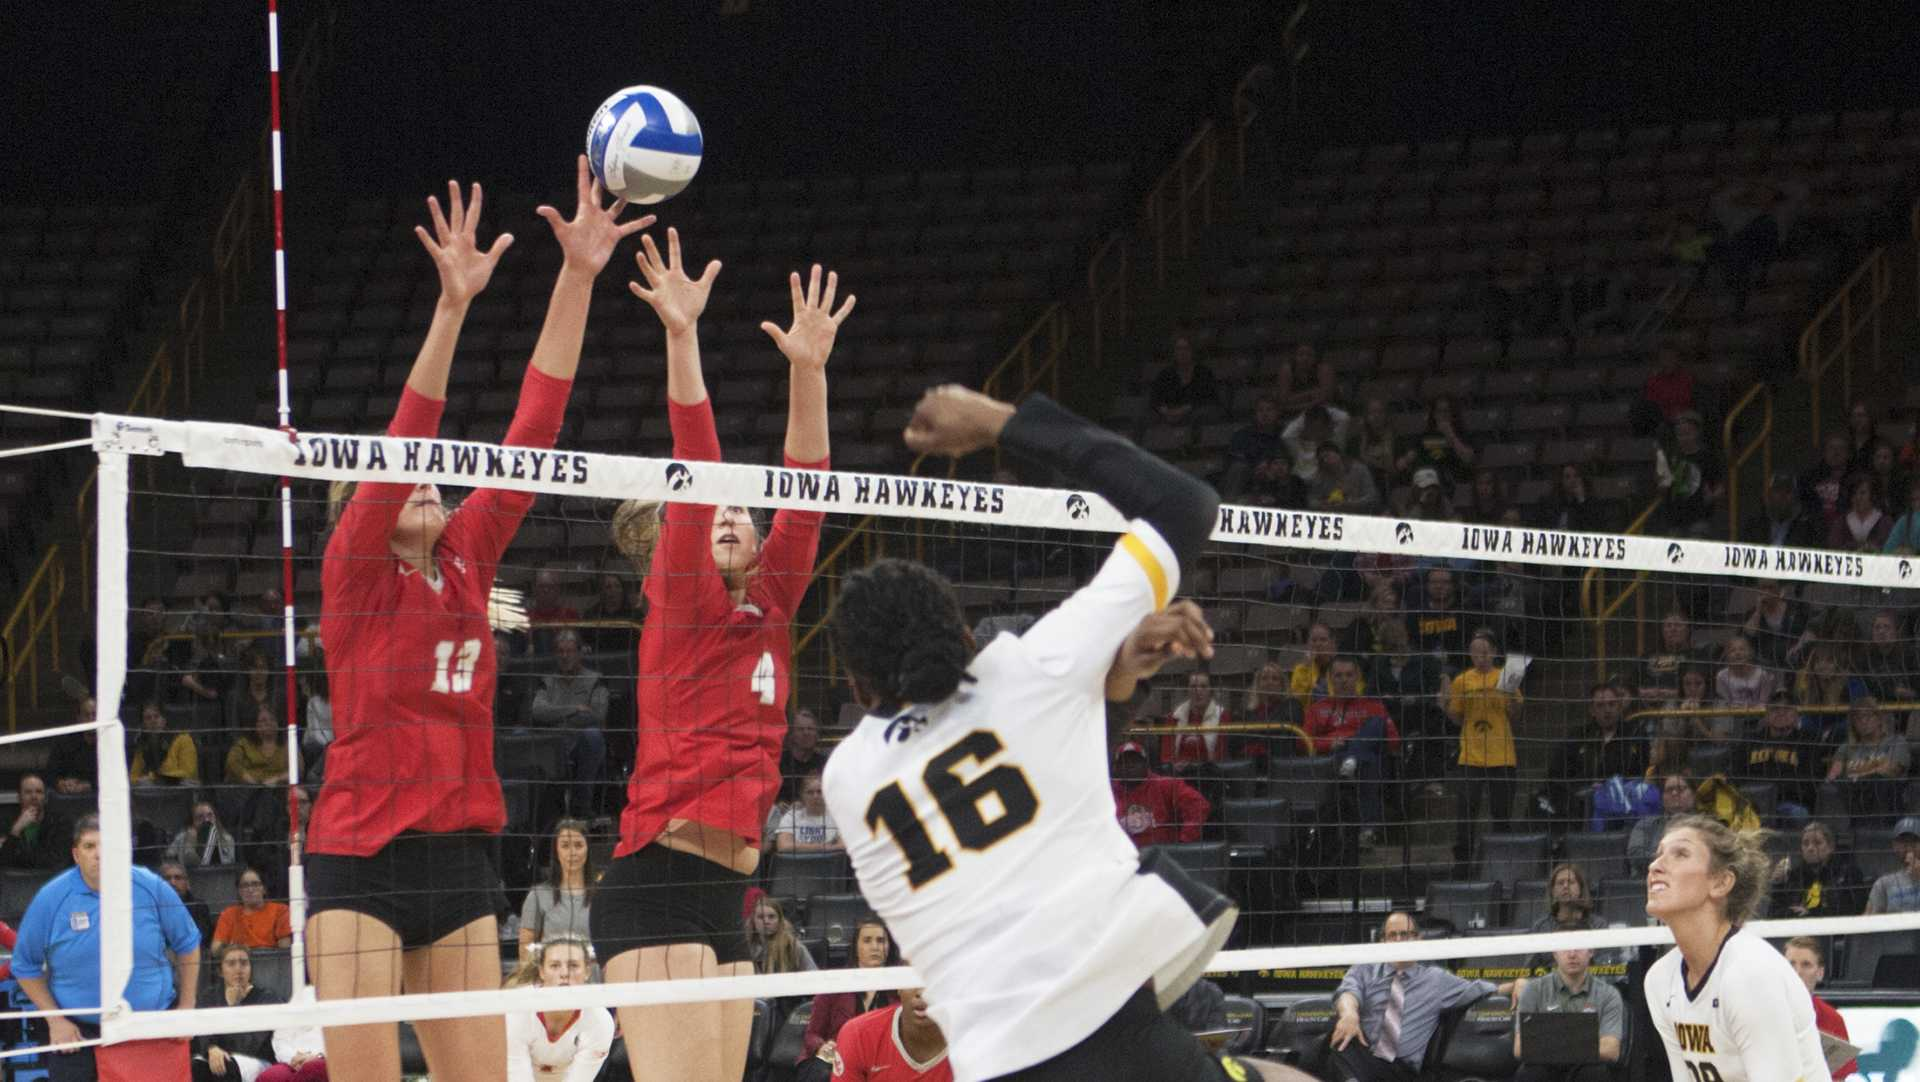 Taylor Louis striking against Ohio at Carver Hawkeye Arena on Saturday, Nov. 11, 2017. The Hawkeyes defeated Ohio State 3-1. (Andrew Baur Schoer/The Daily Iowan)